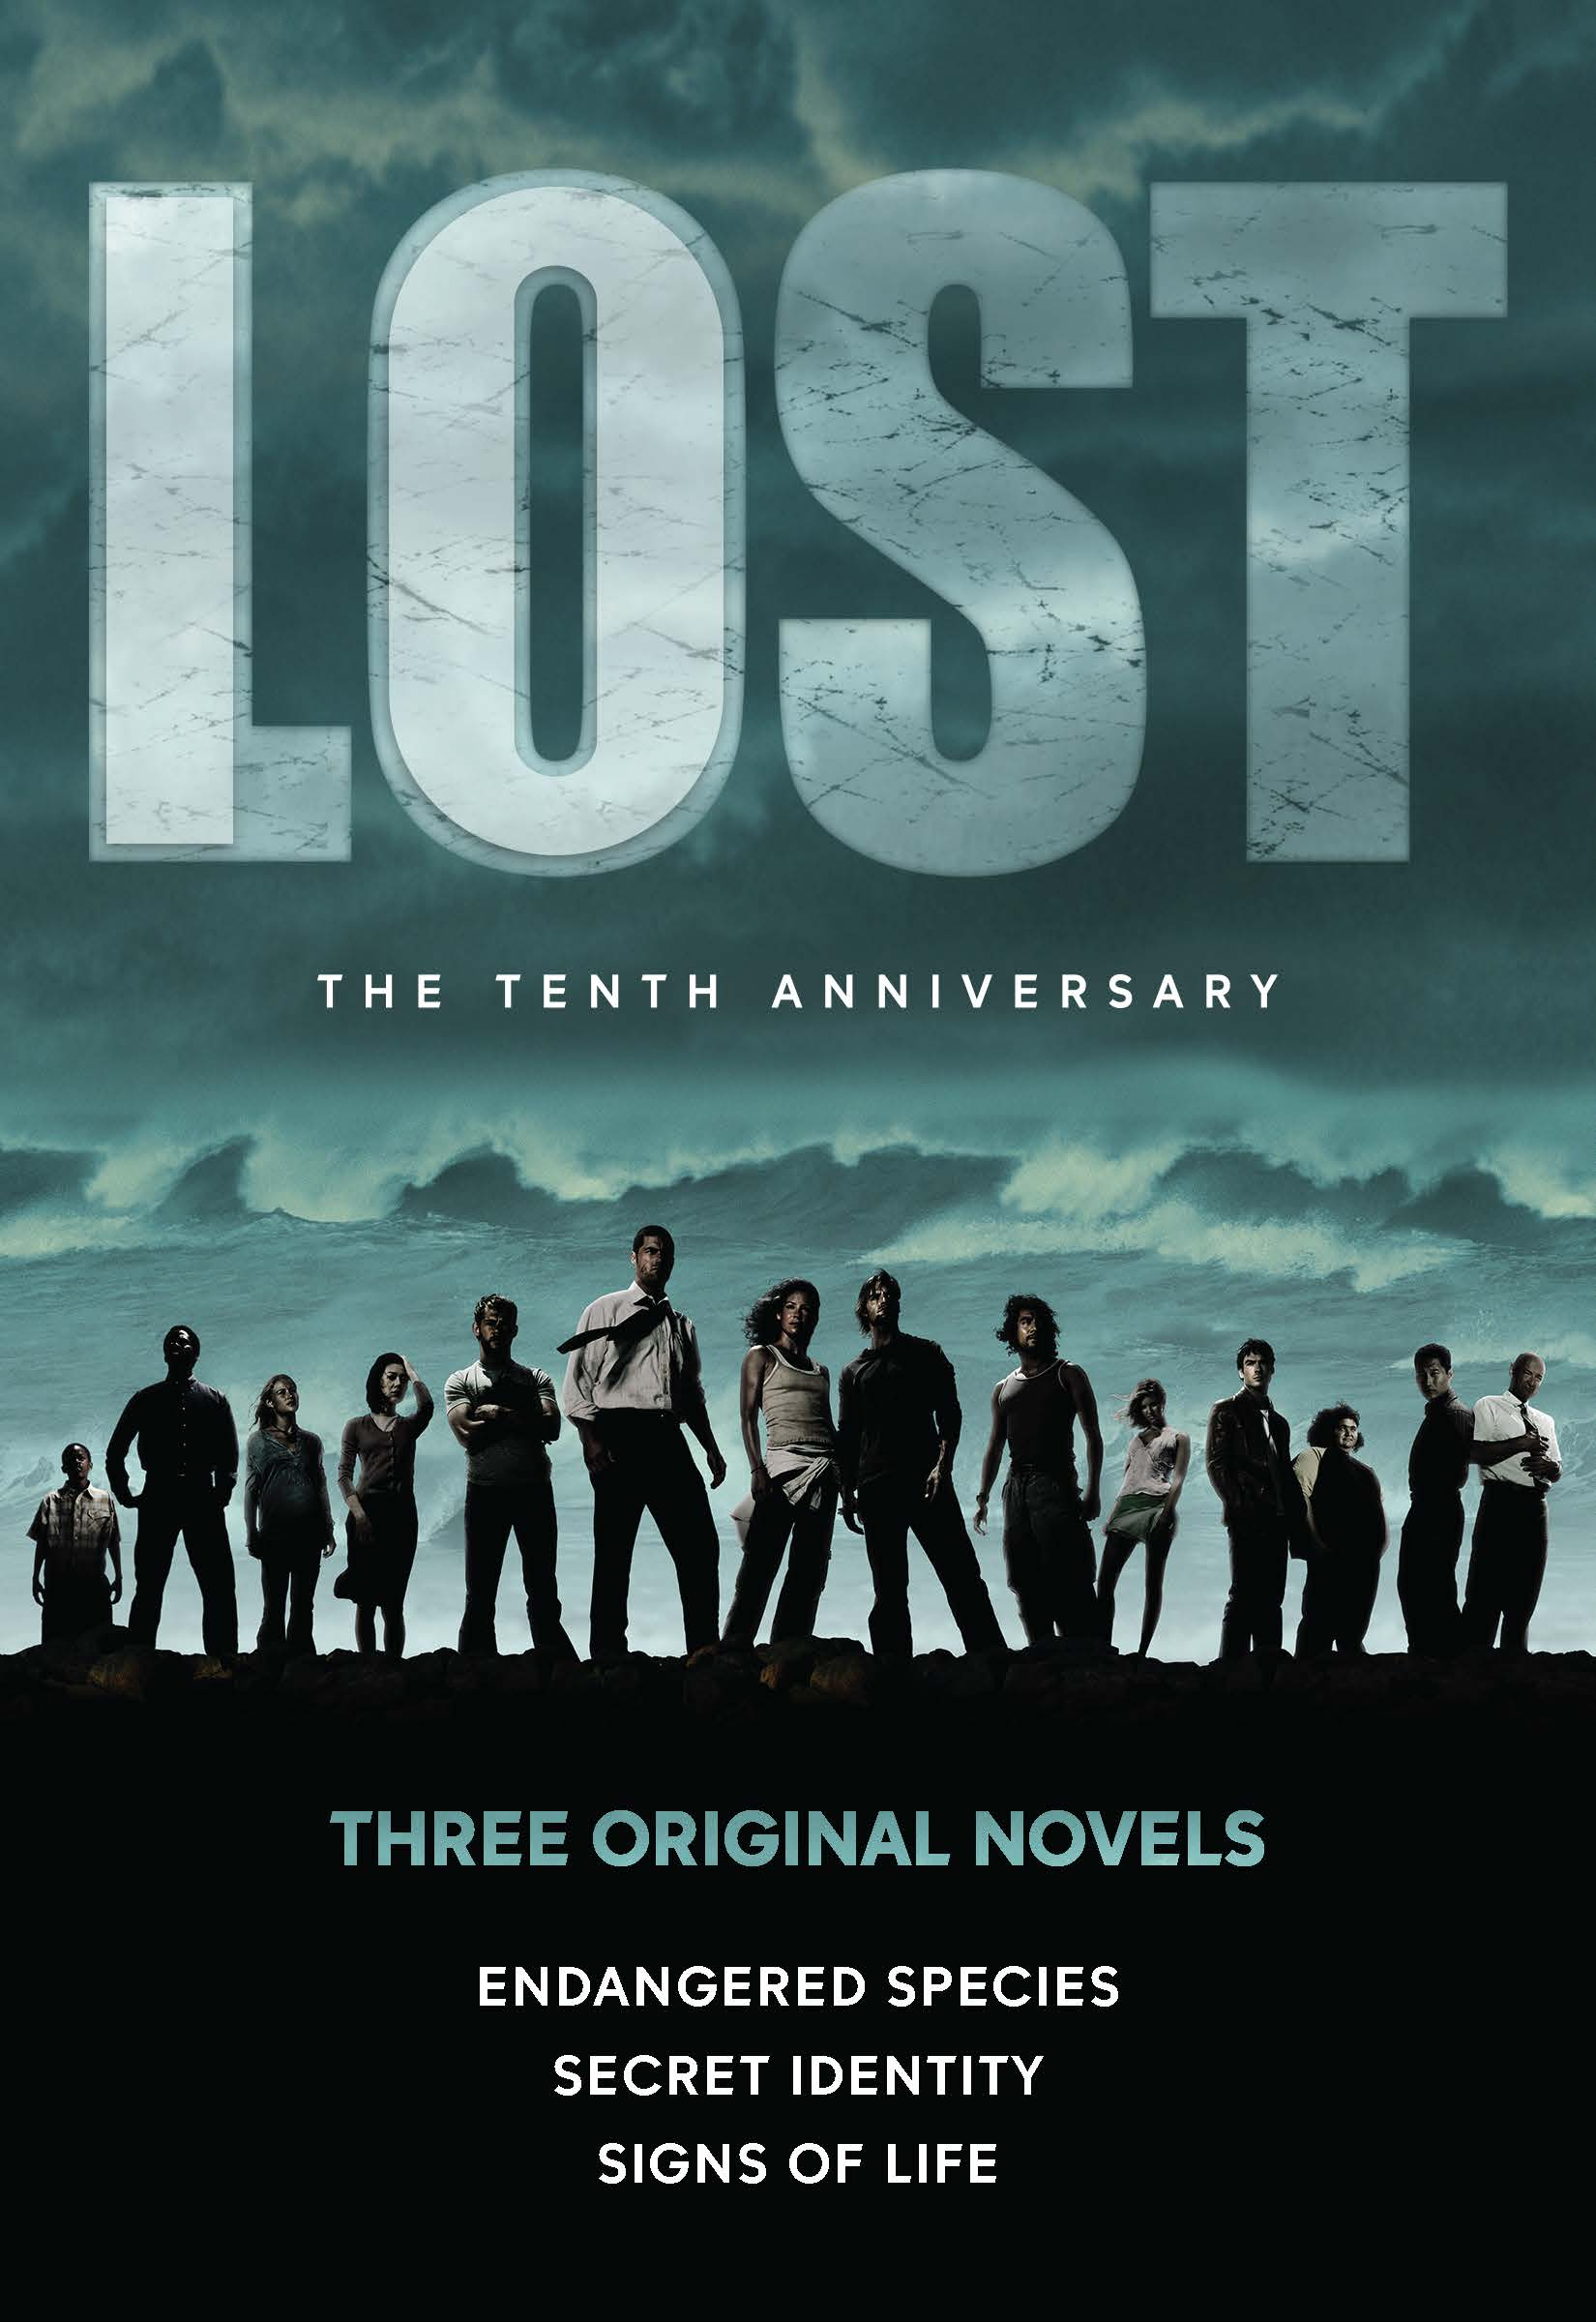 Lost:  The Novels